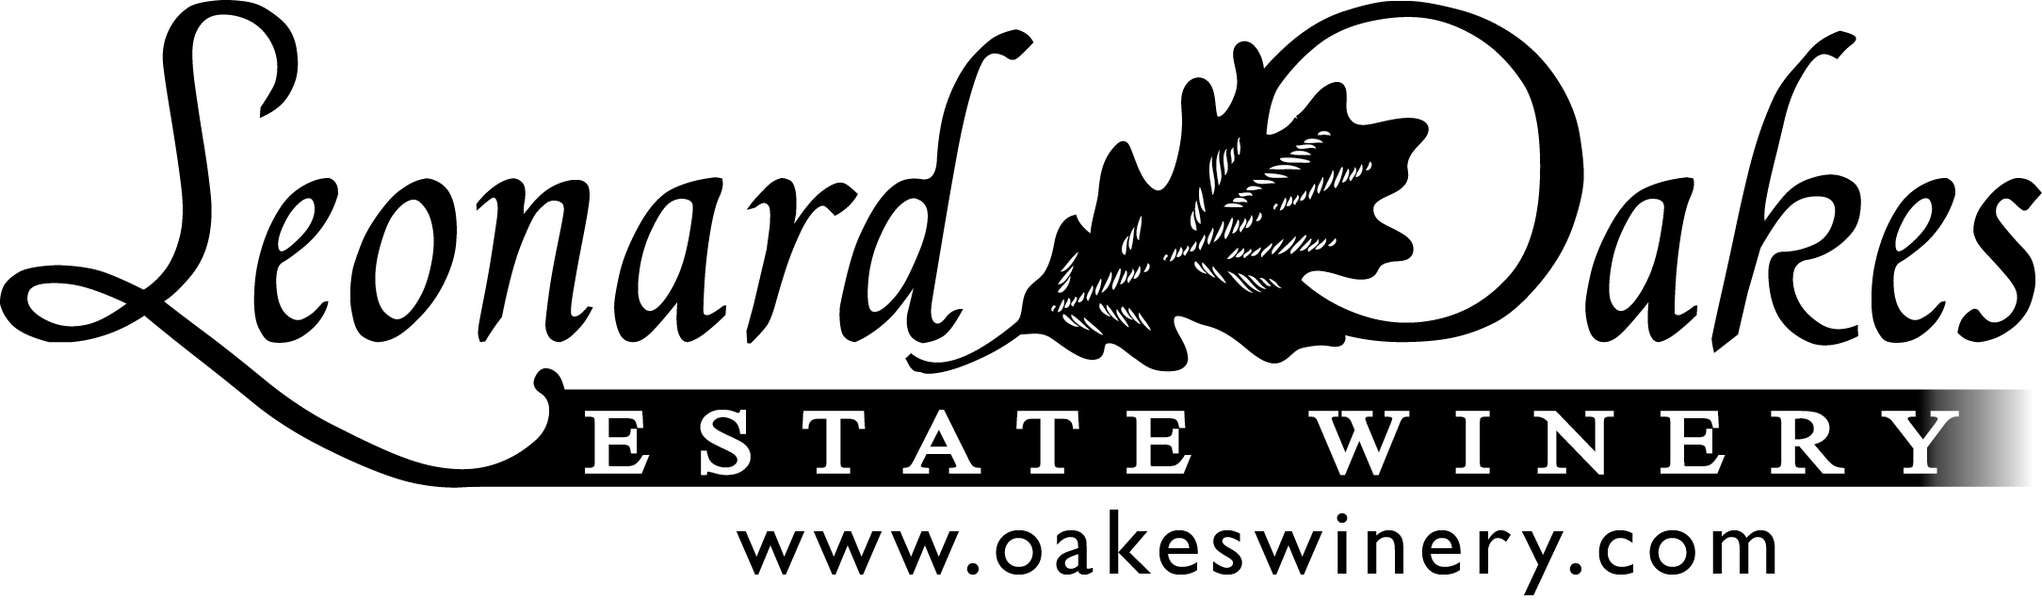 Logo for Leonard Oakes Estate Winery